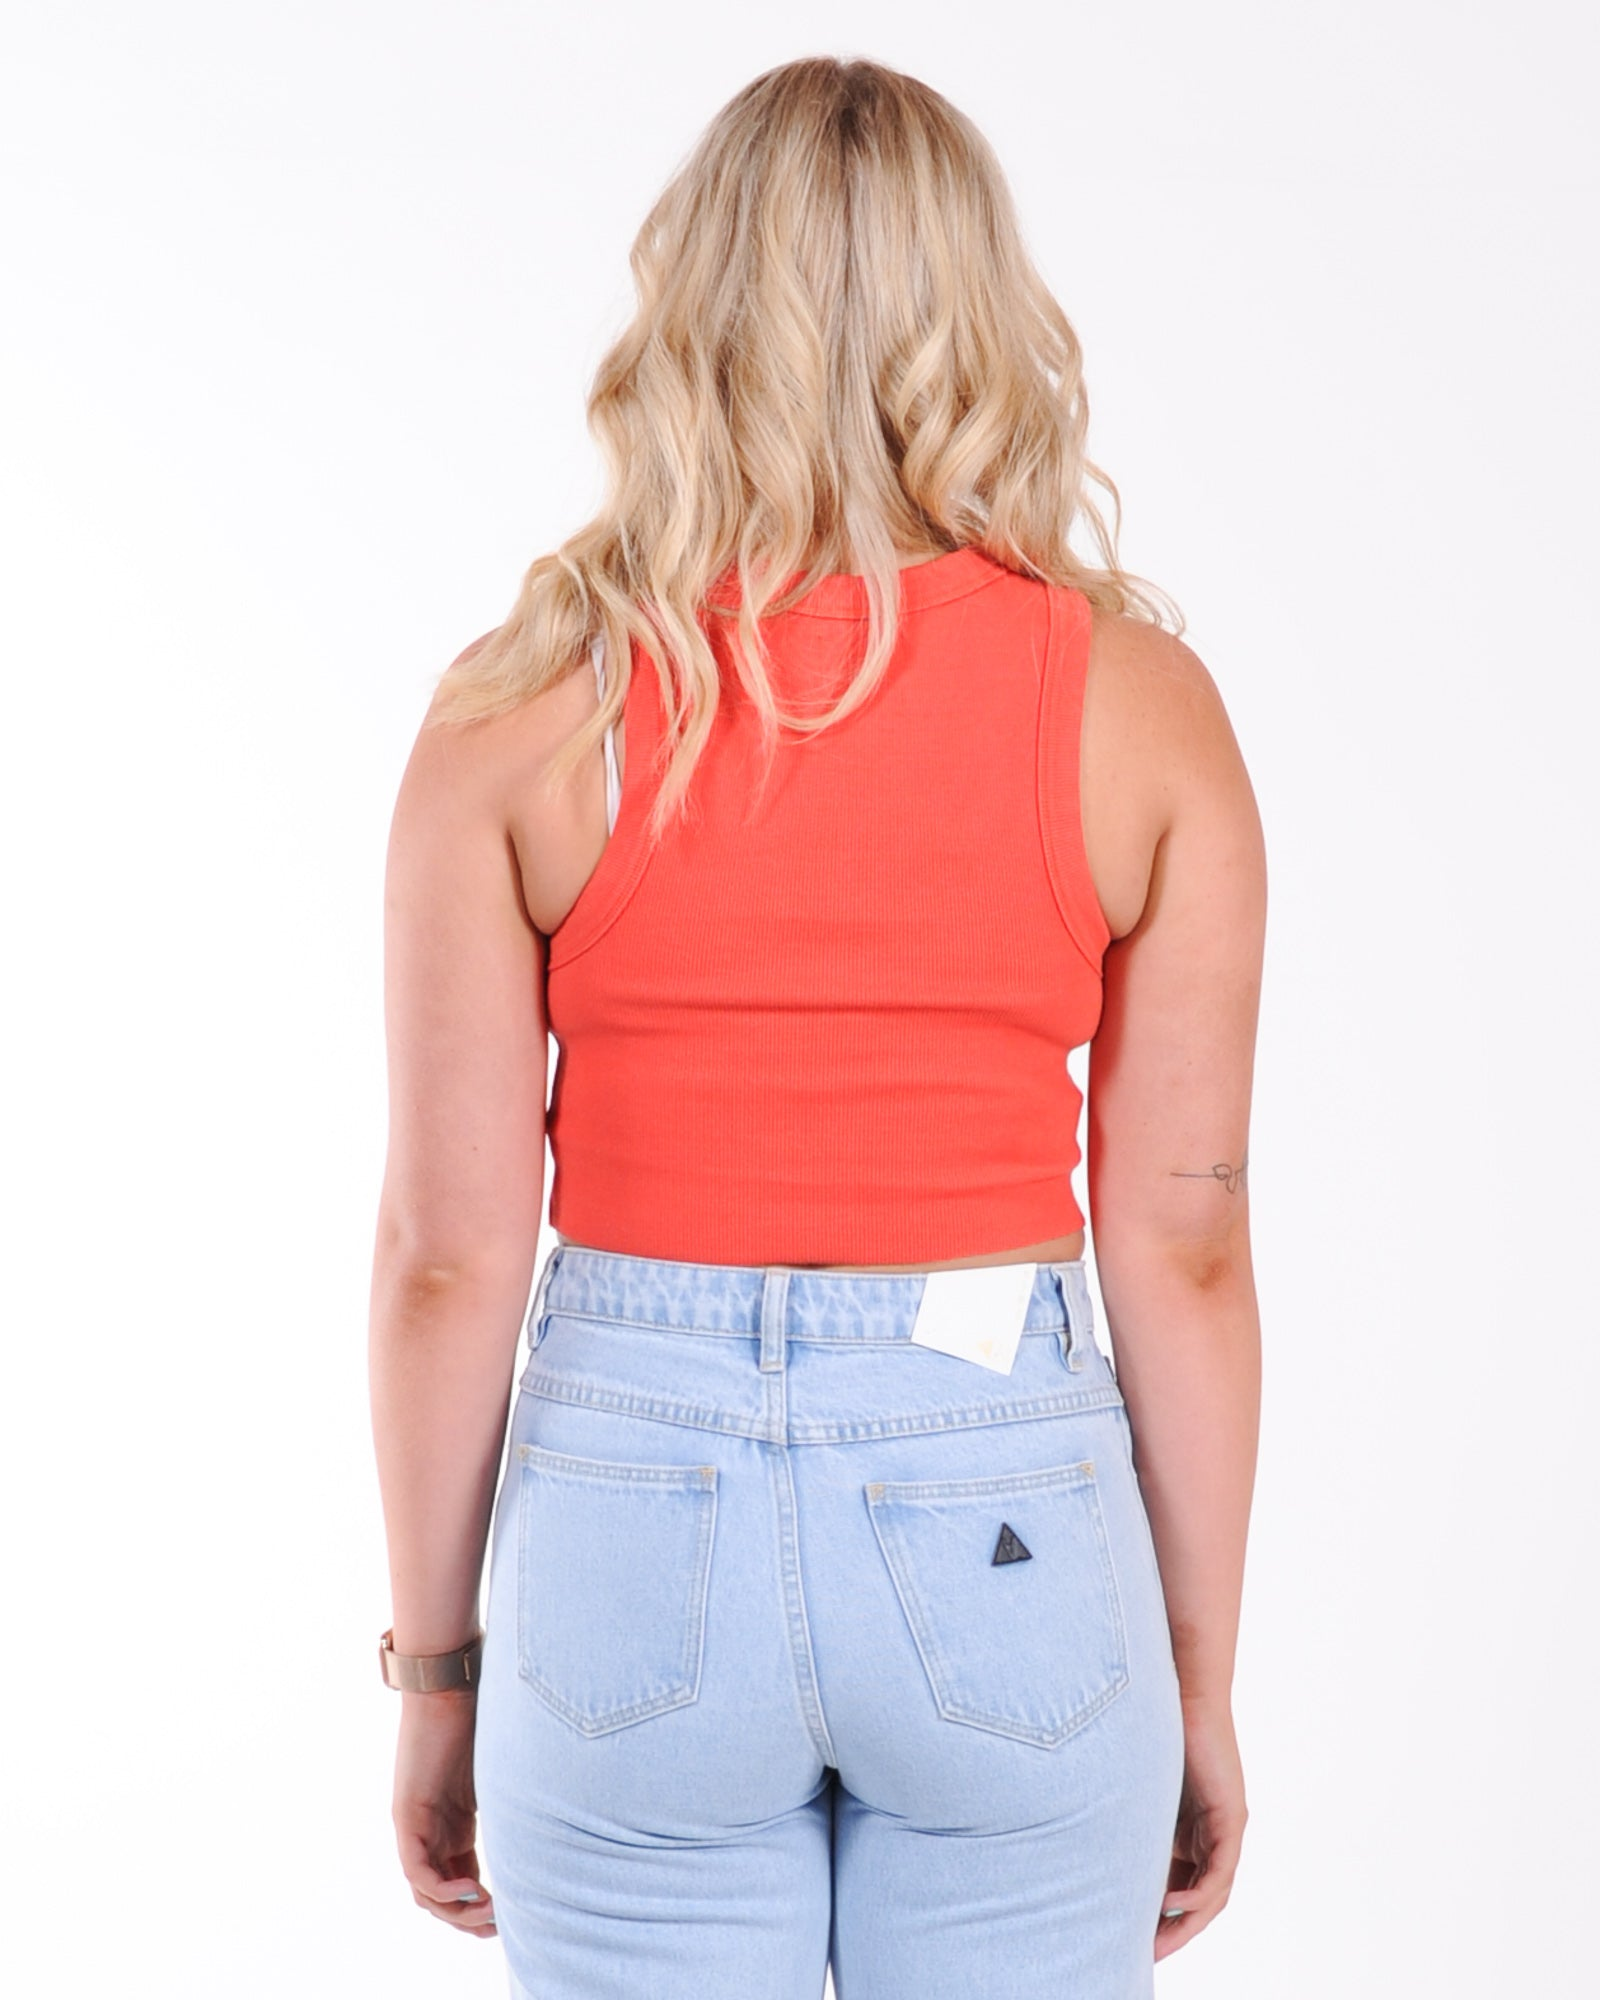 A Brand Heather Singlet - Rust Red